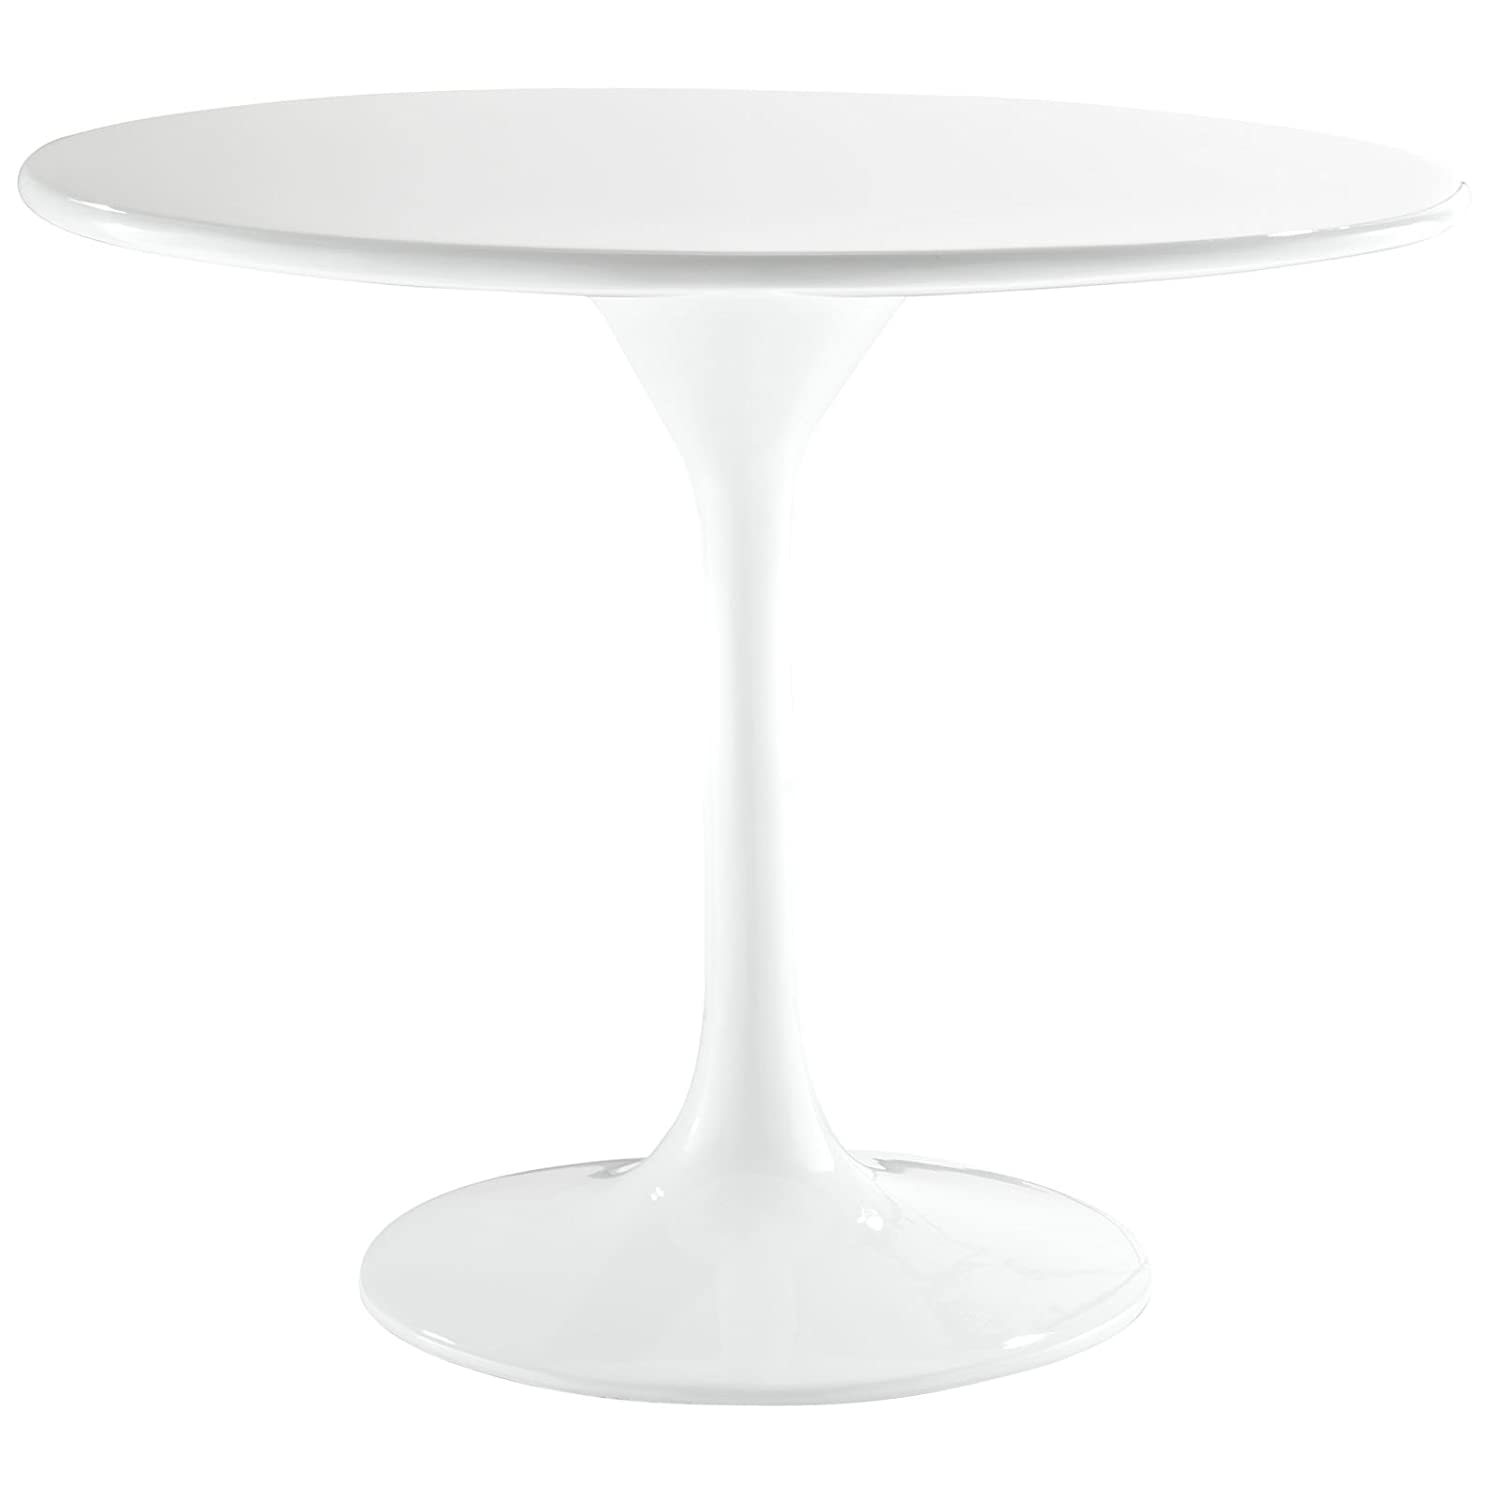 Amazoncom Modway 24 Eero Saarinen Tulip Side Table in White